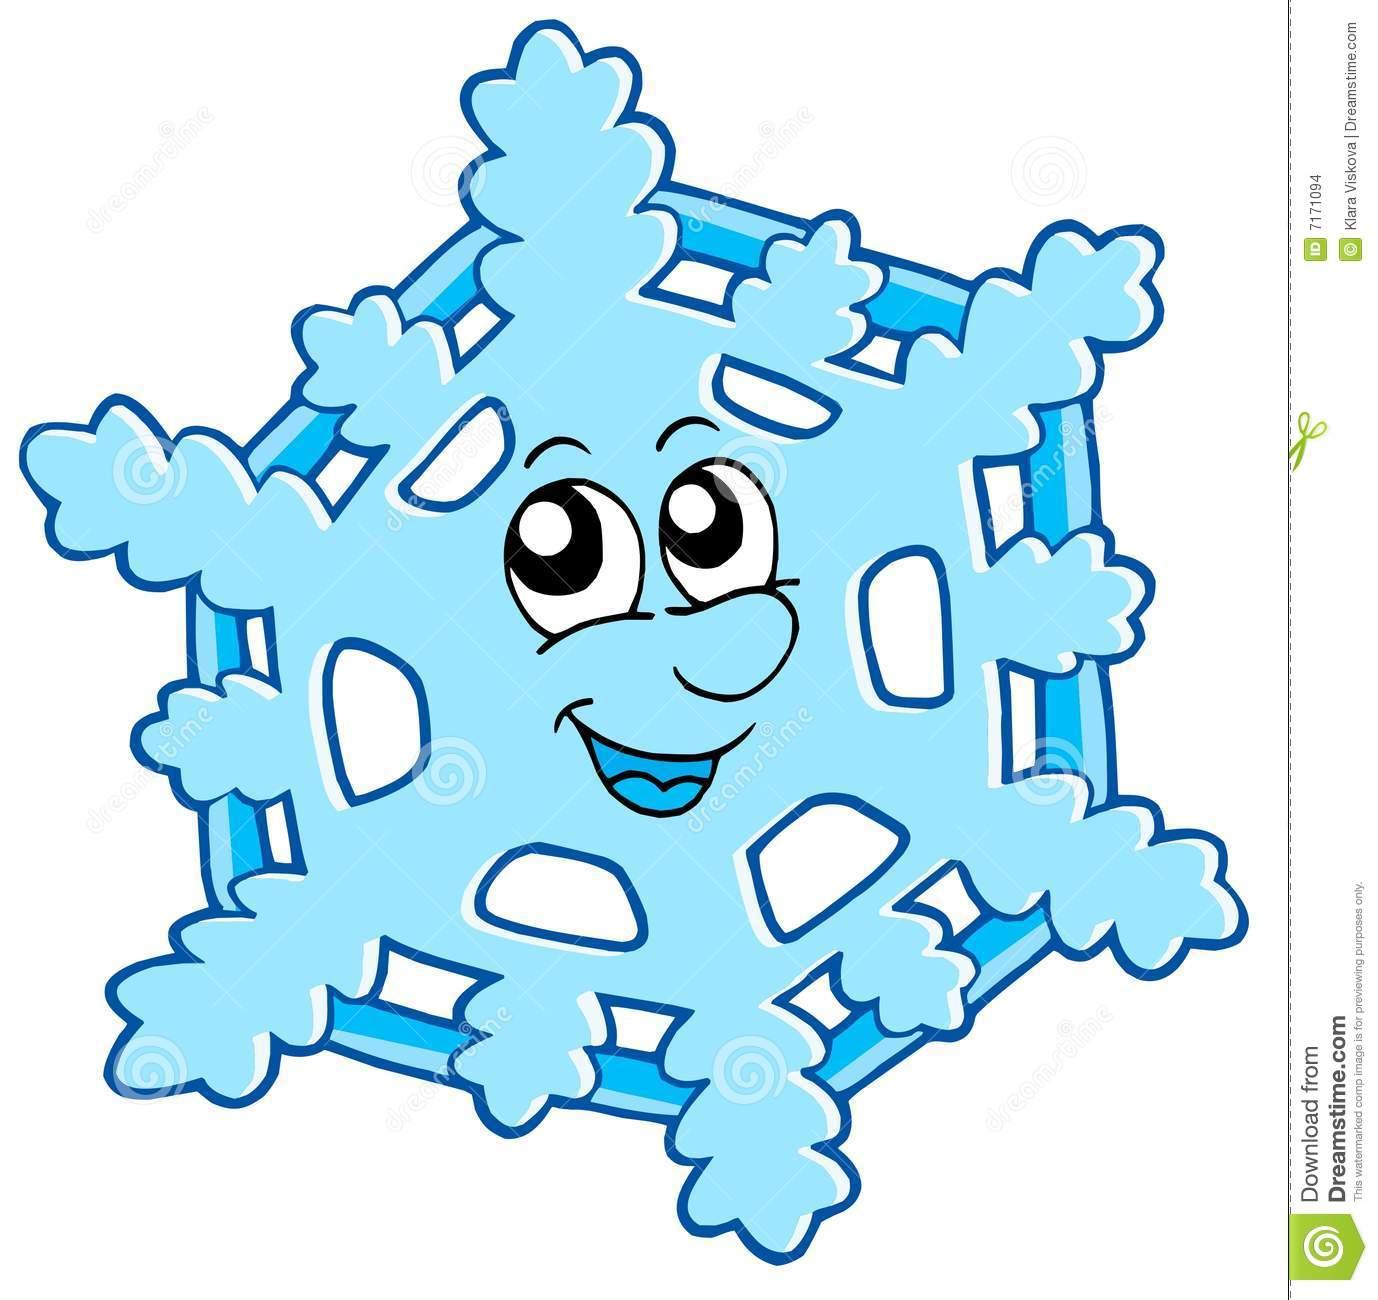 more similar stock images of happy snowflake